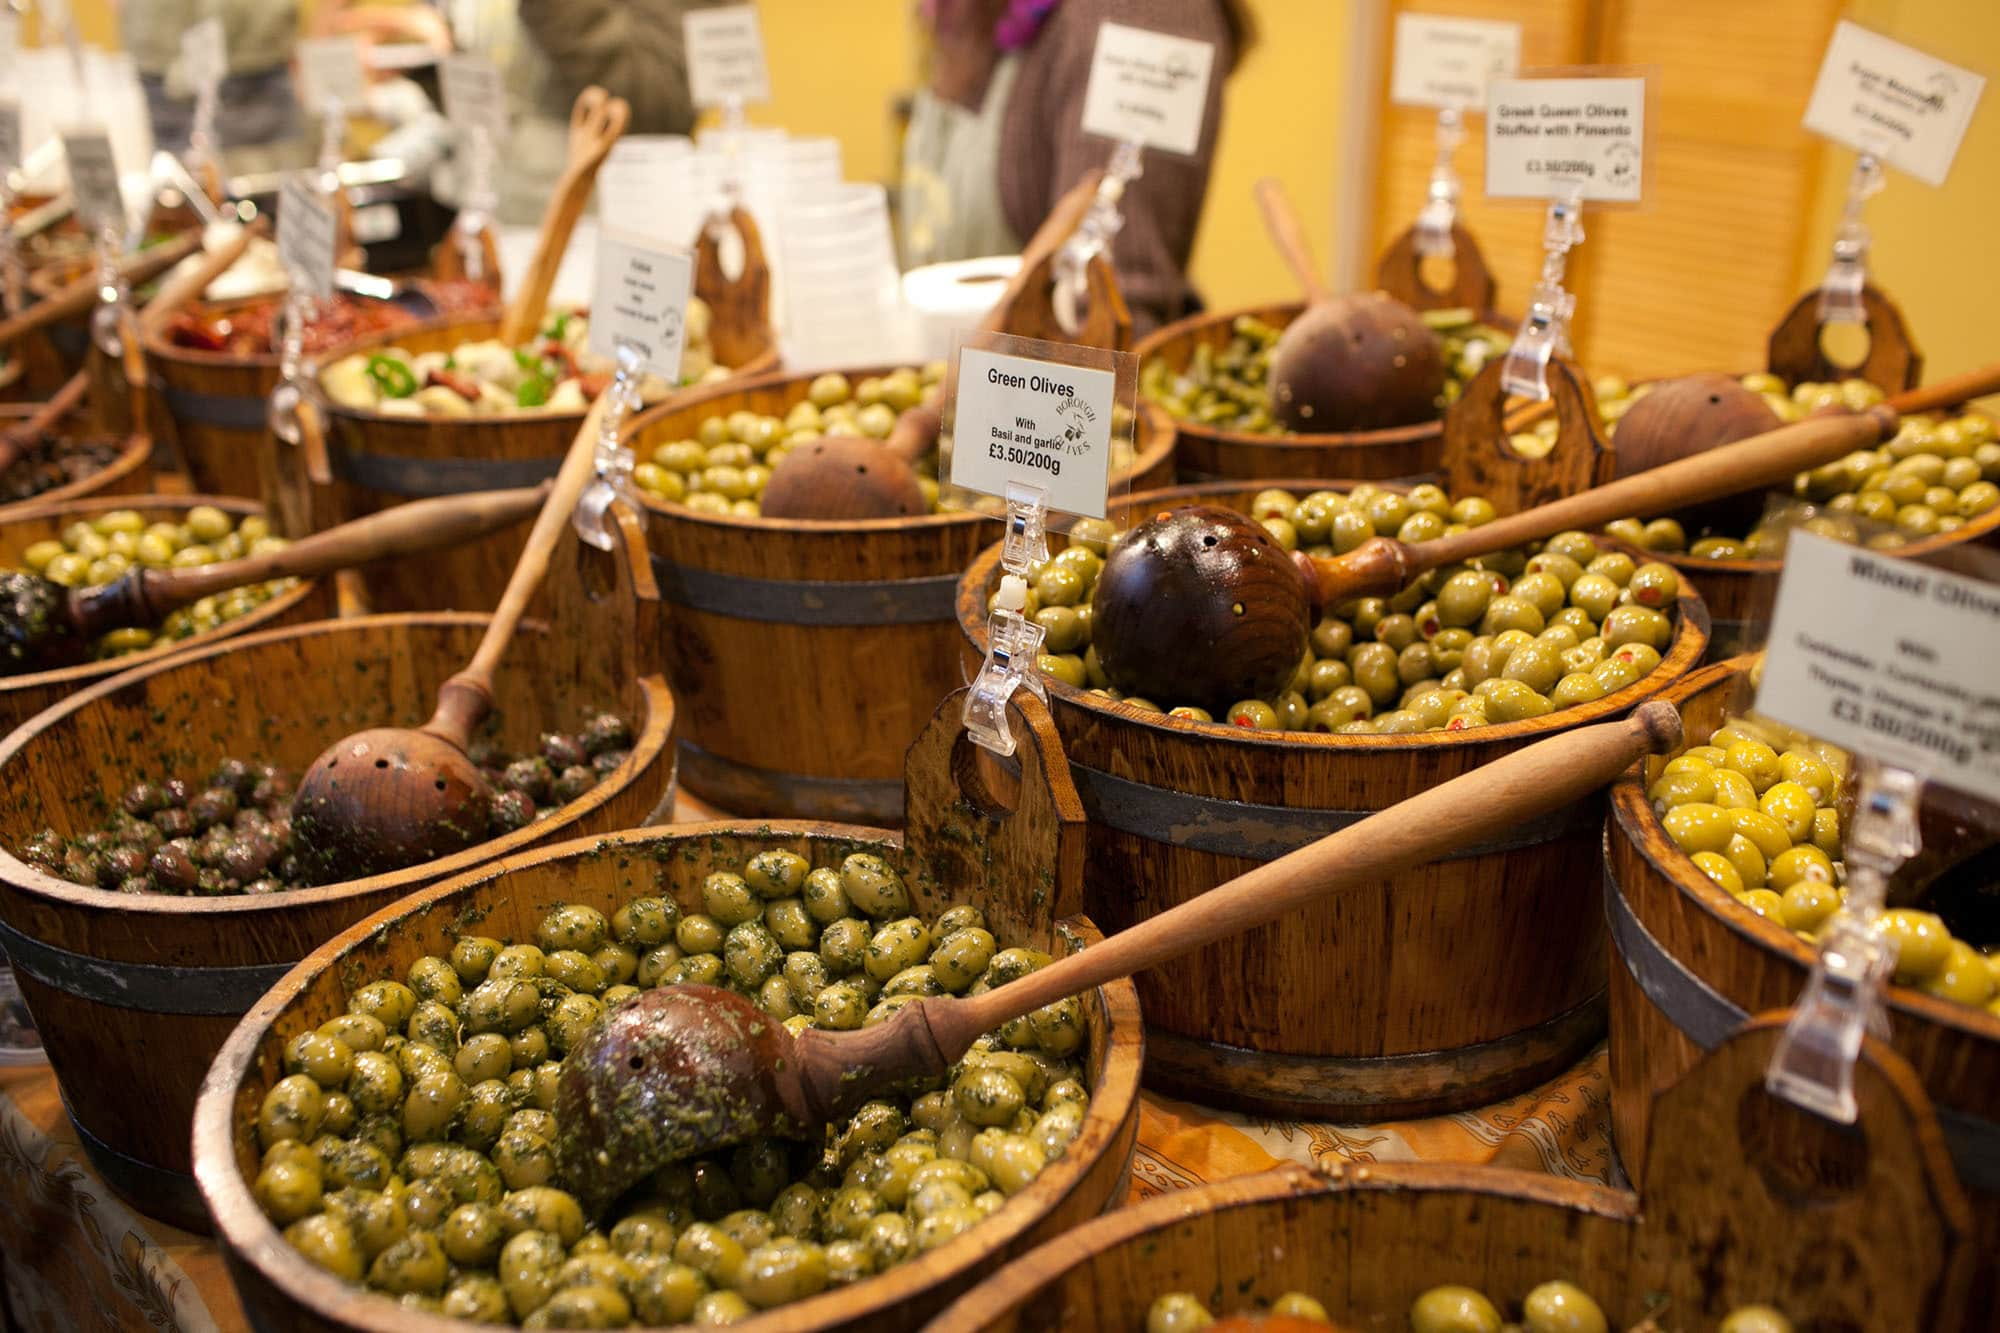 Olives at Borough Market in London, England